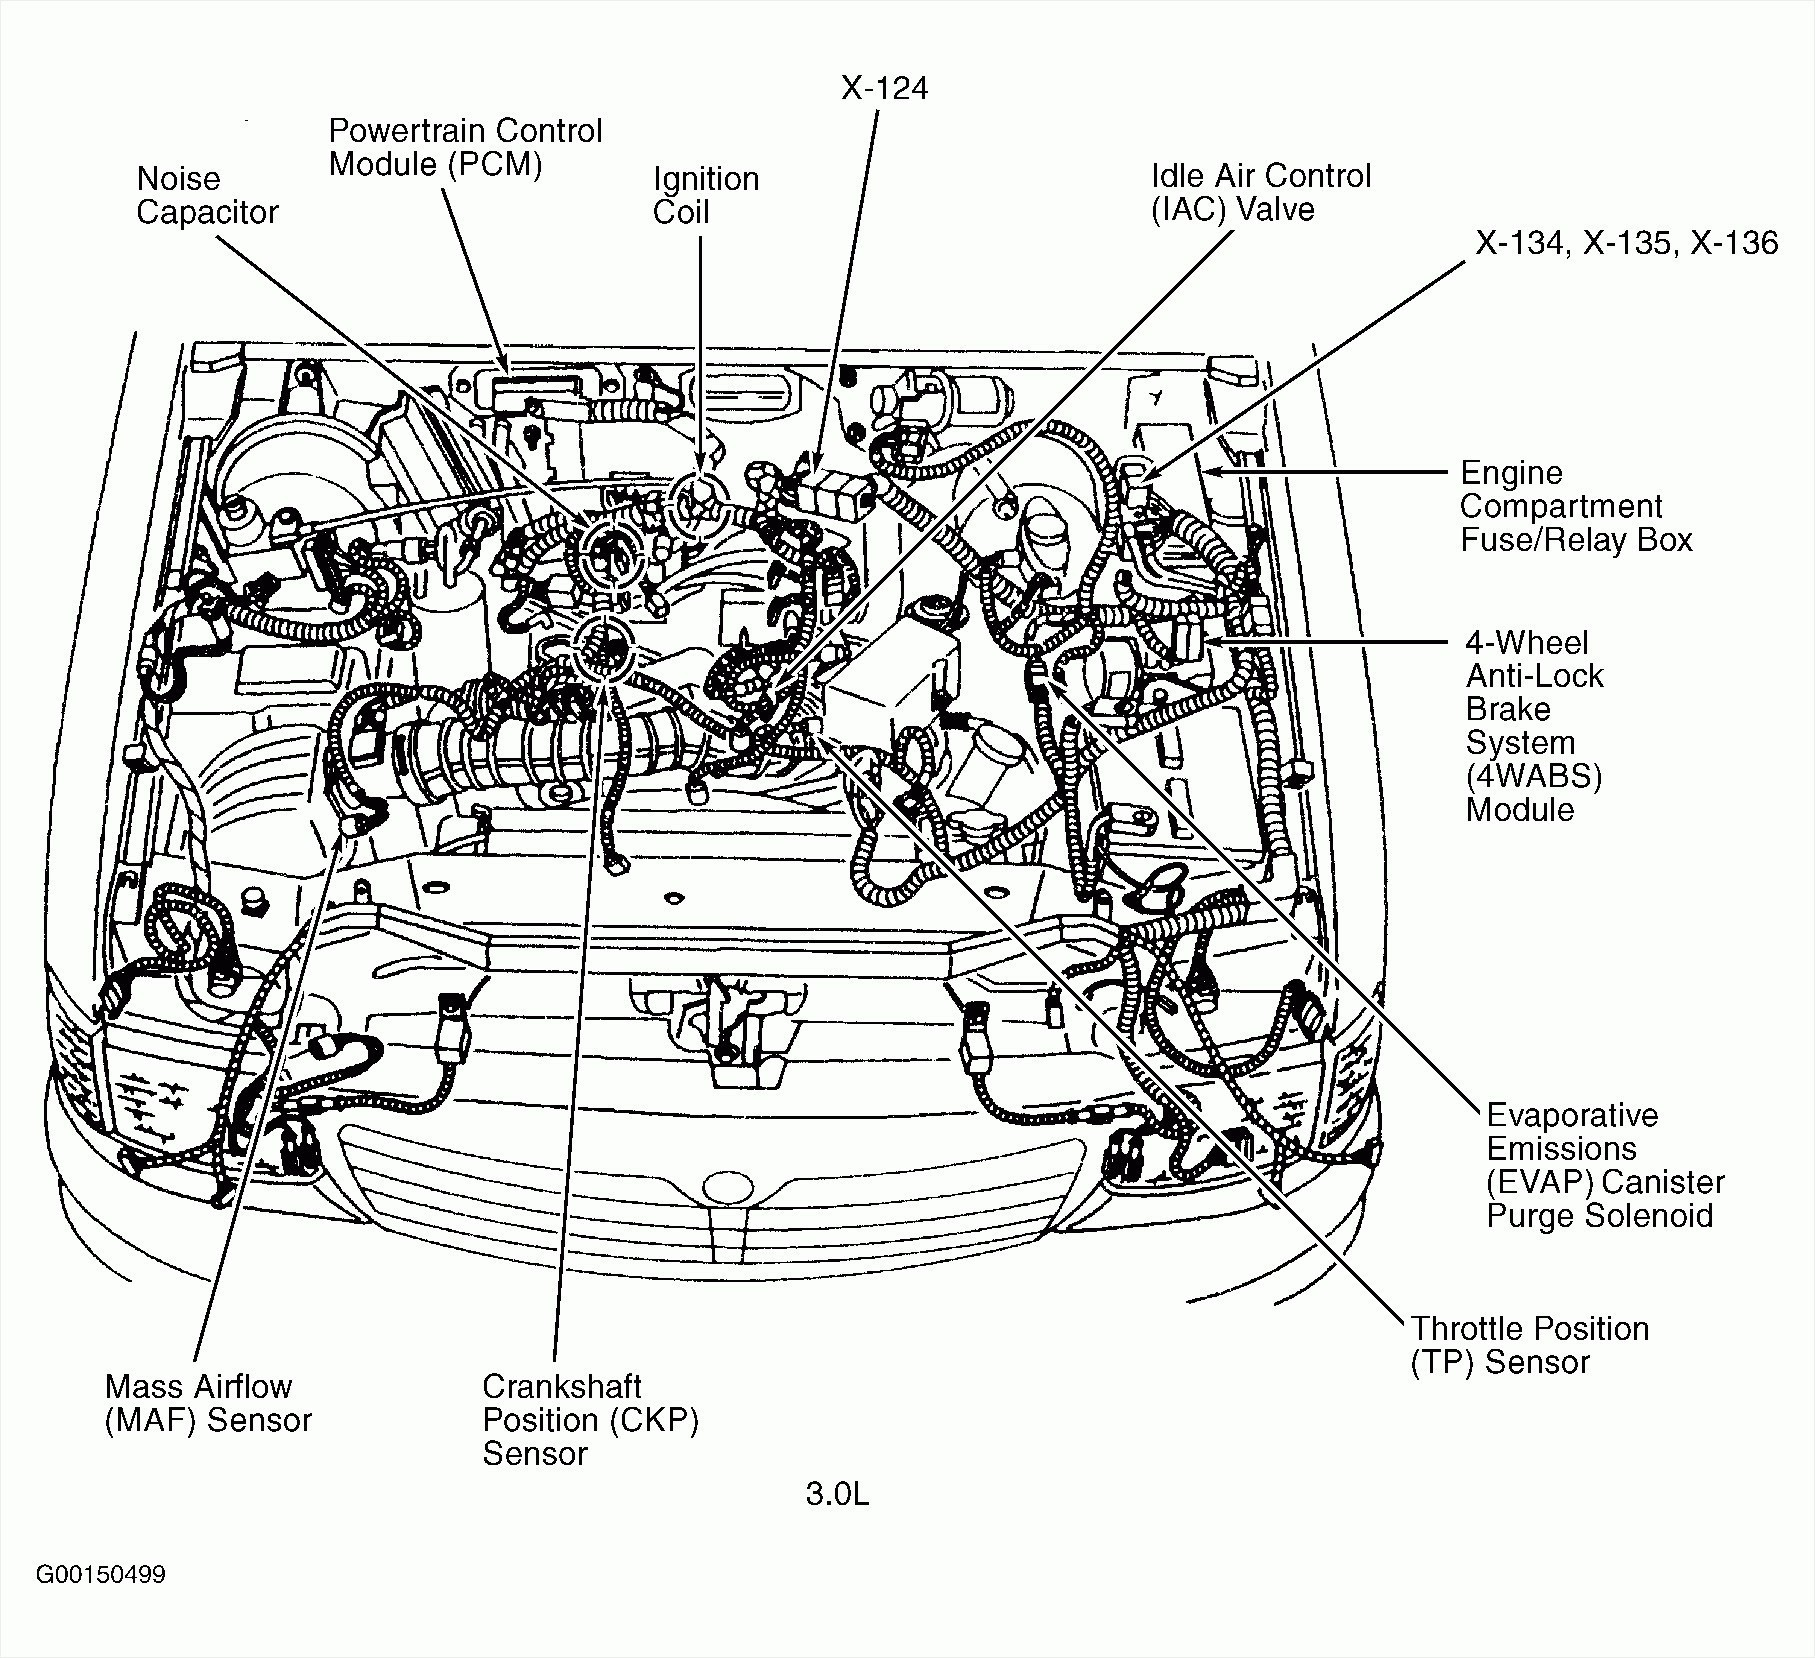 4 3 Liter V6 Vortec Engine Diagram 1992 ford Ranger 3 0 V6 Engine Diagram Of 4 3 Liter V6 Vortec Engine Diagram